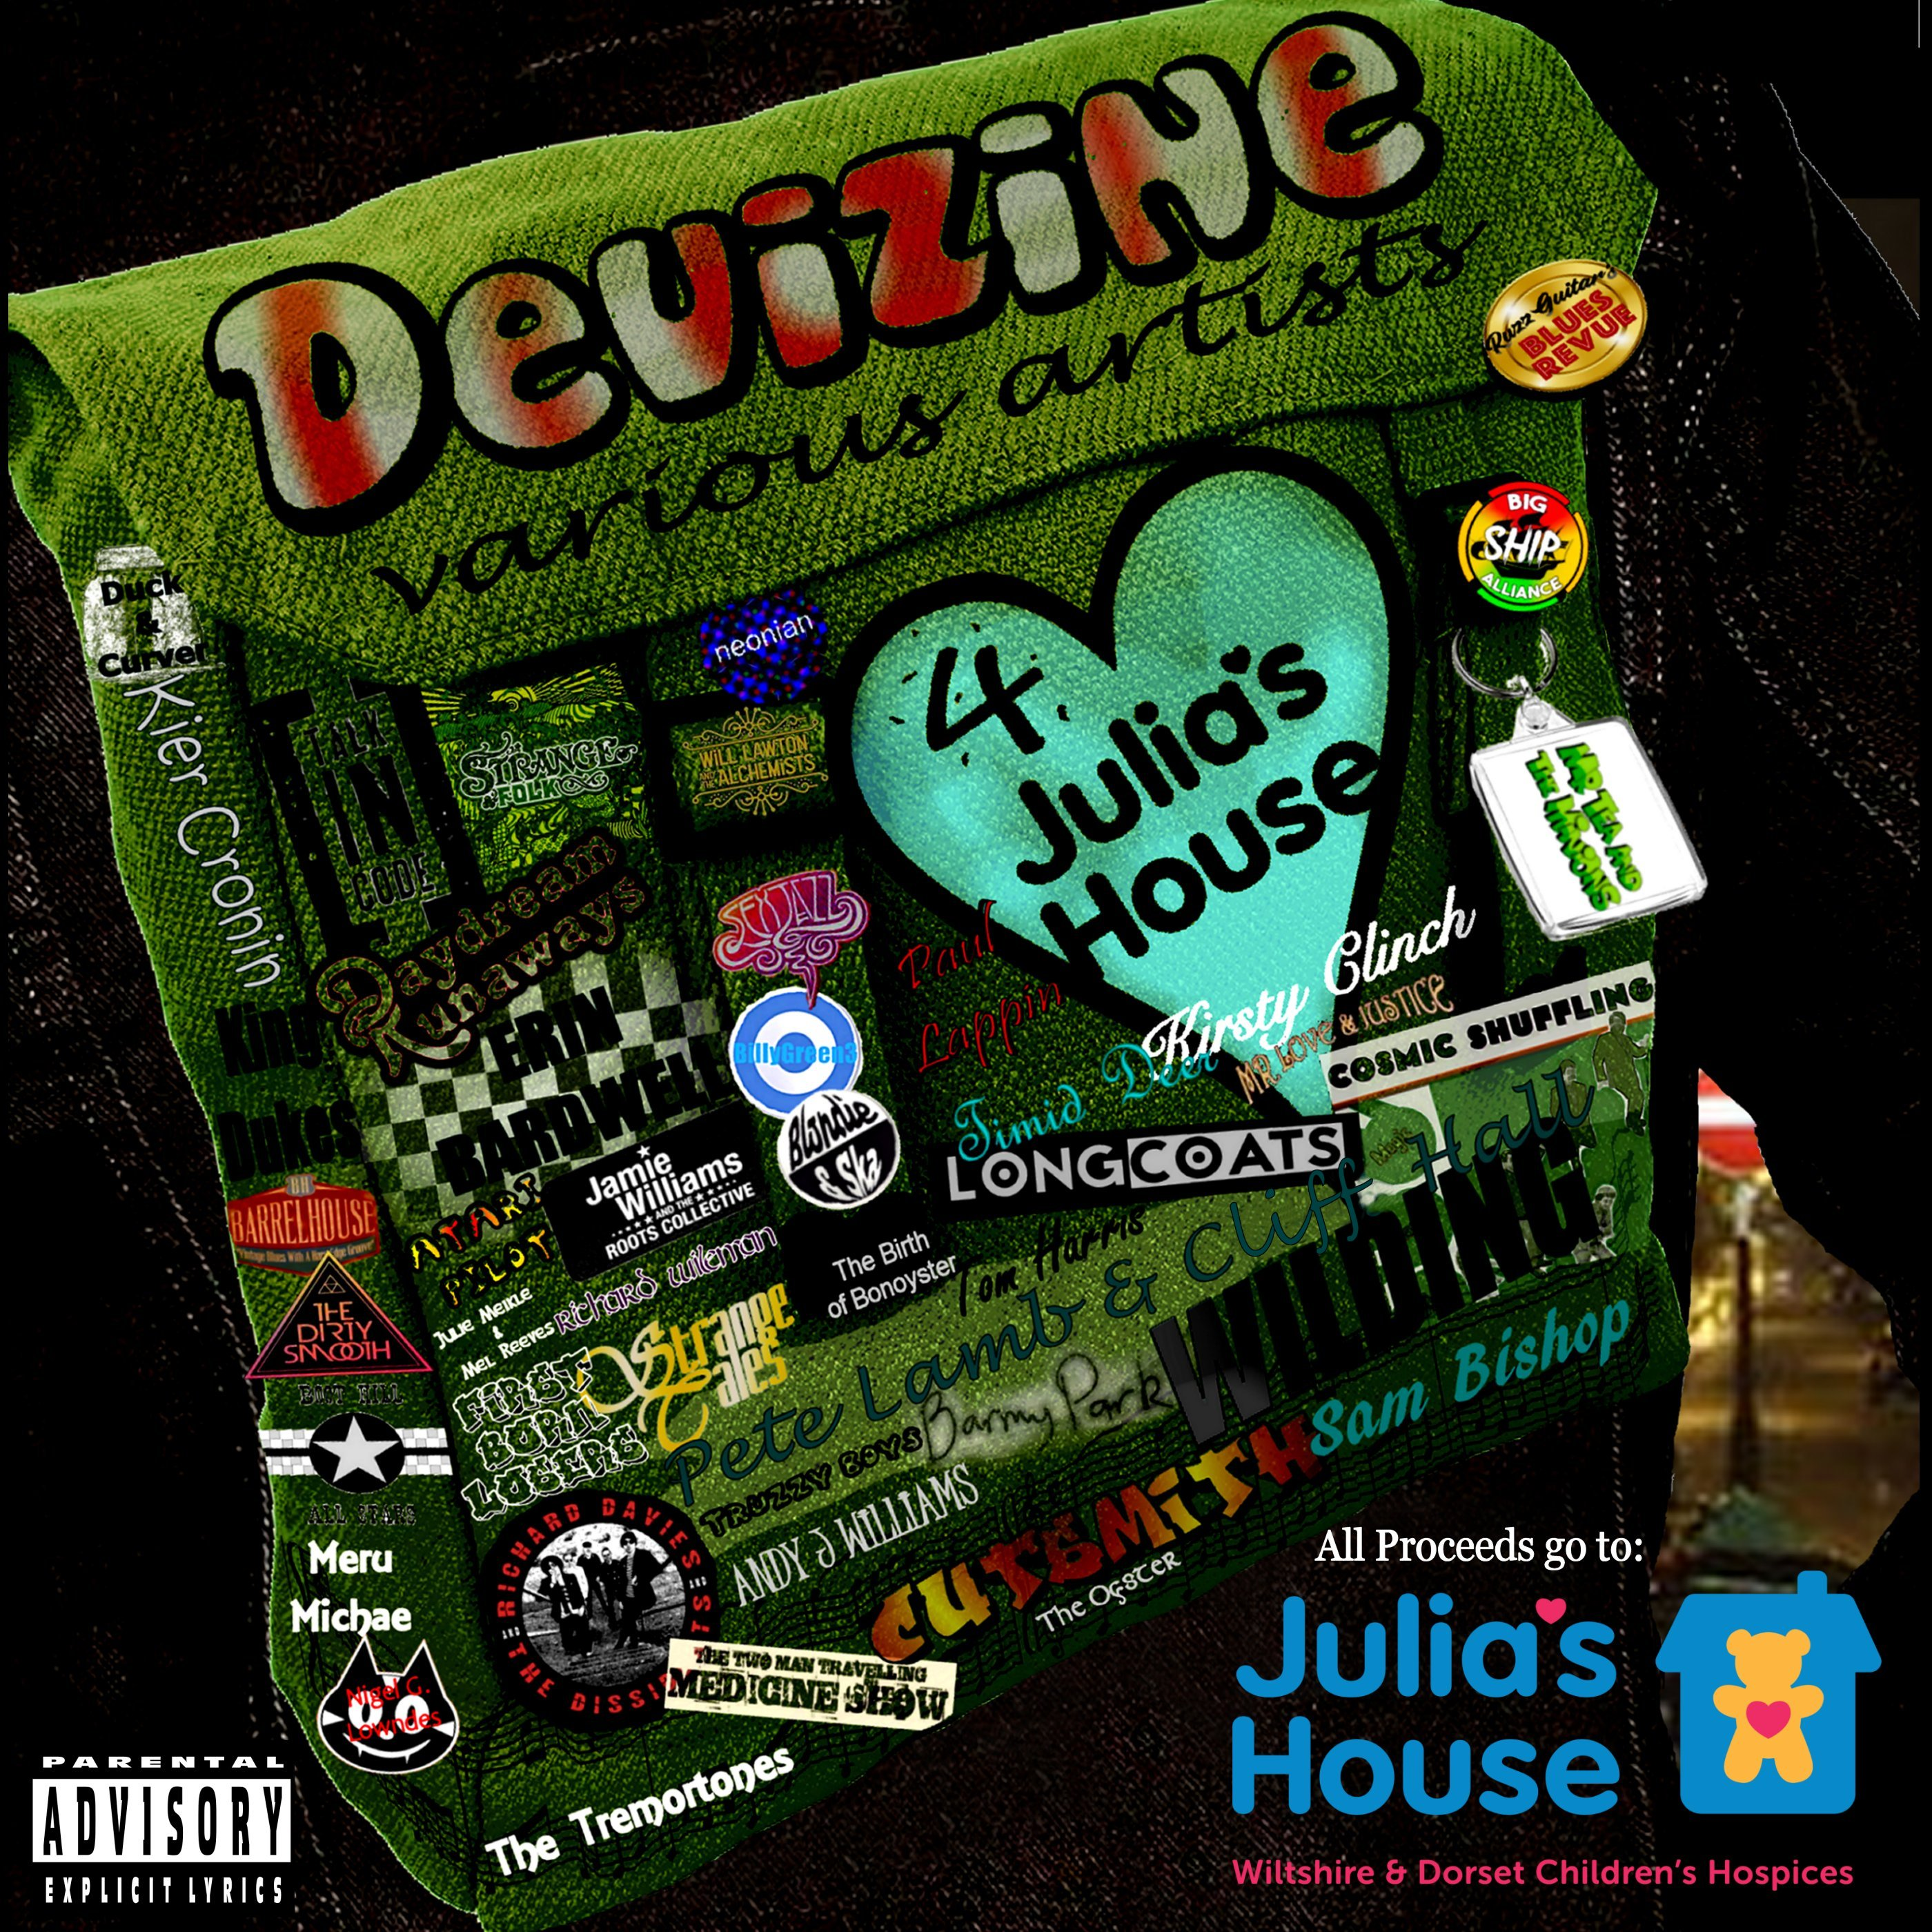 Devizine Proudly Presents Various Artists 4 Julia's House; Here's the Track Listing!